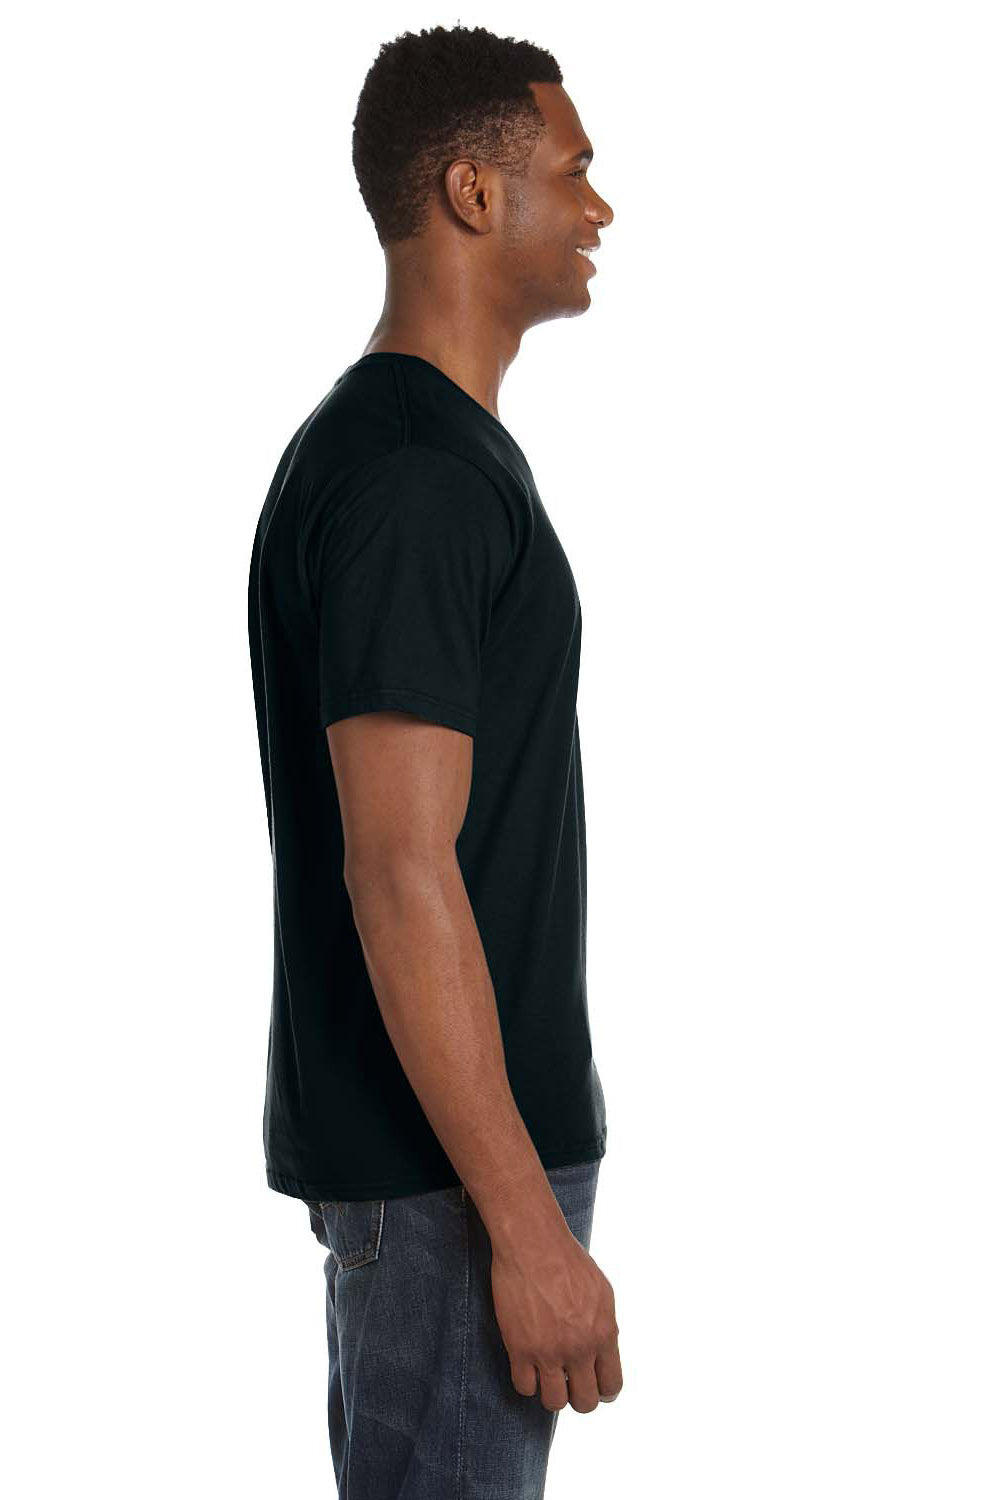 Anvil 982 Mens Short Sleeve V-Neck T-Shirt Black Side